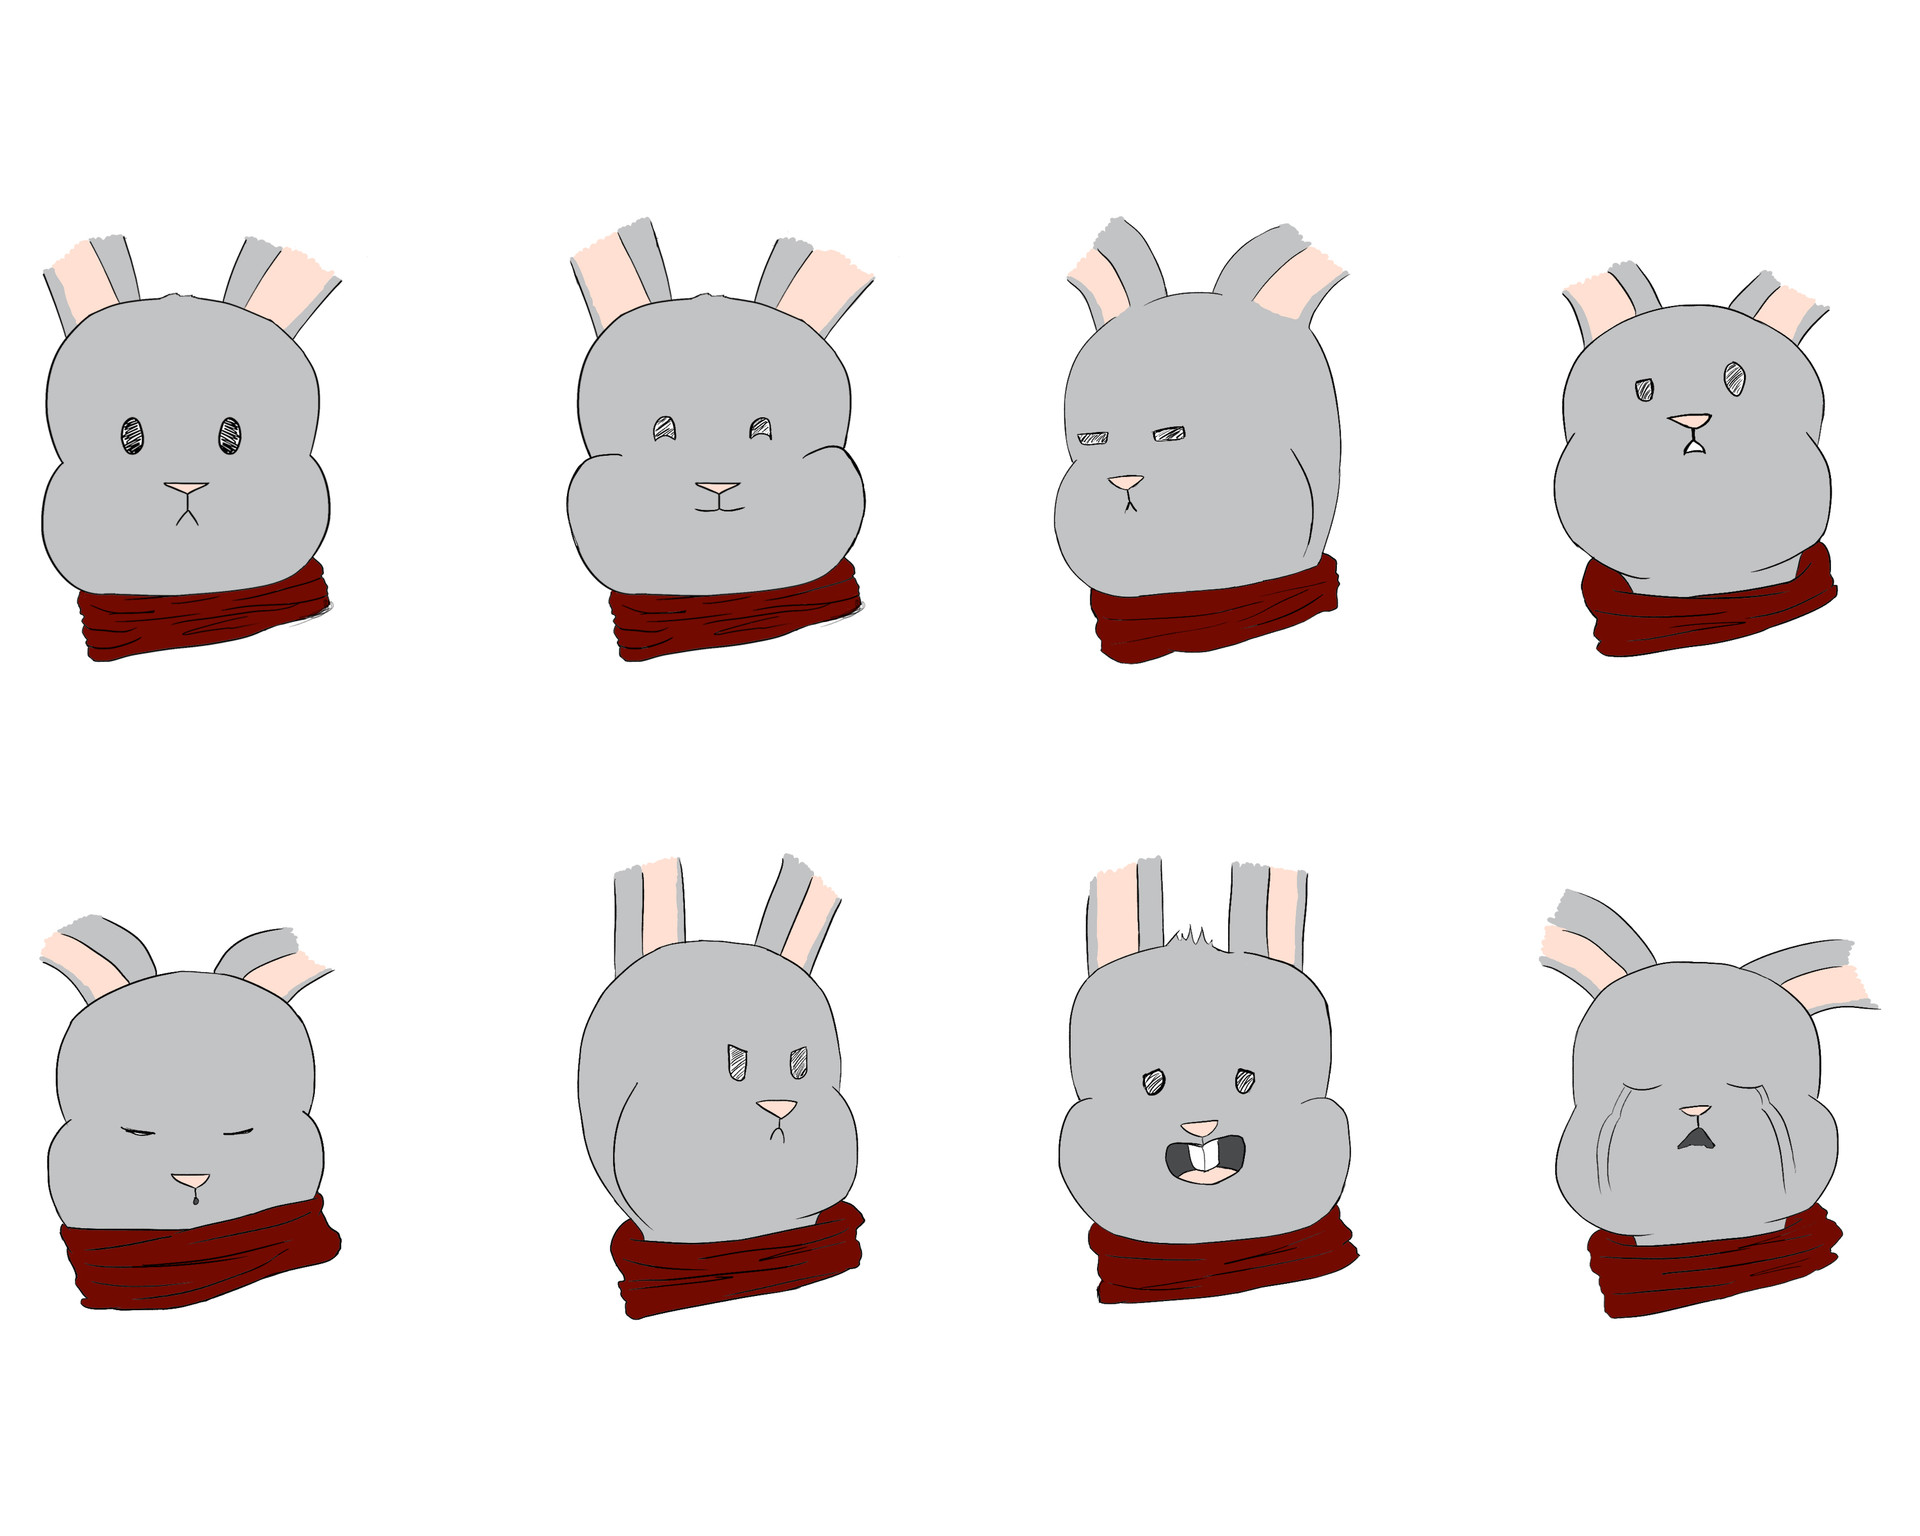 Josue canales bunny face expressions